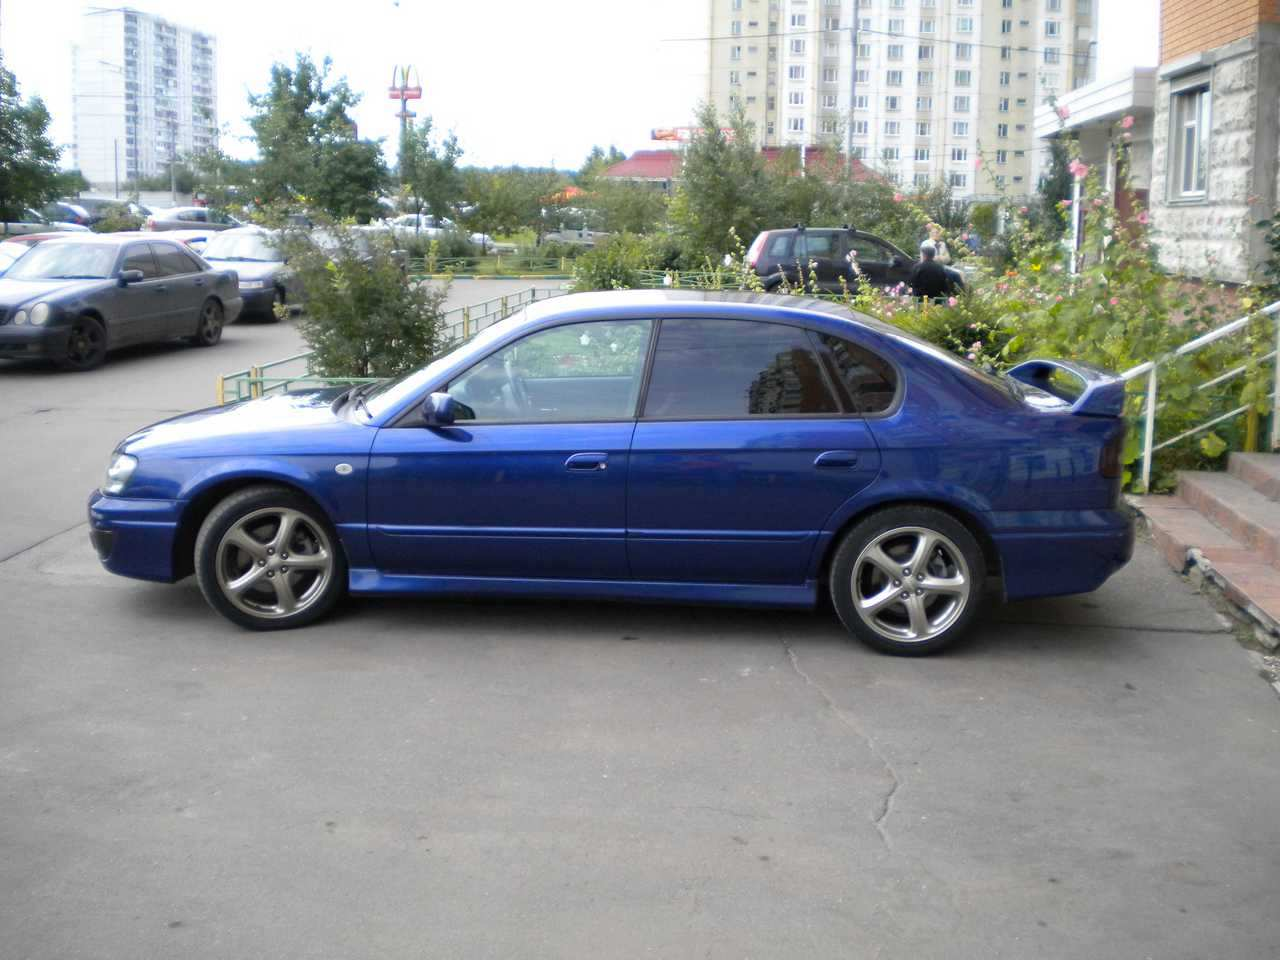 used 2002 subaru legacy b4 photos 1998cc gasoline automatic for sale. Black Bedroom Furniture Sets. Home Design Ideas